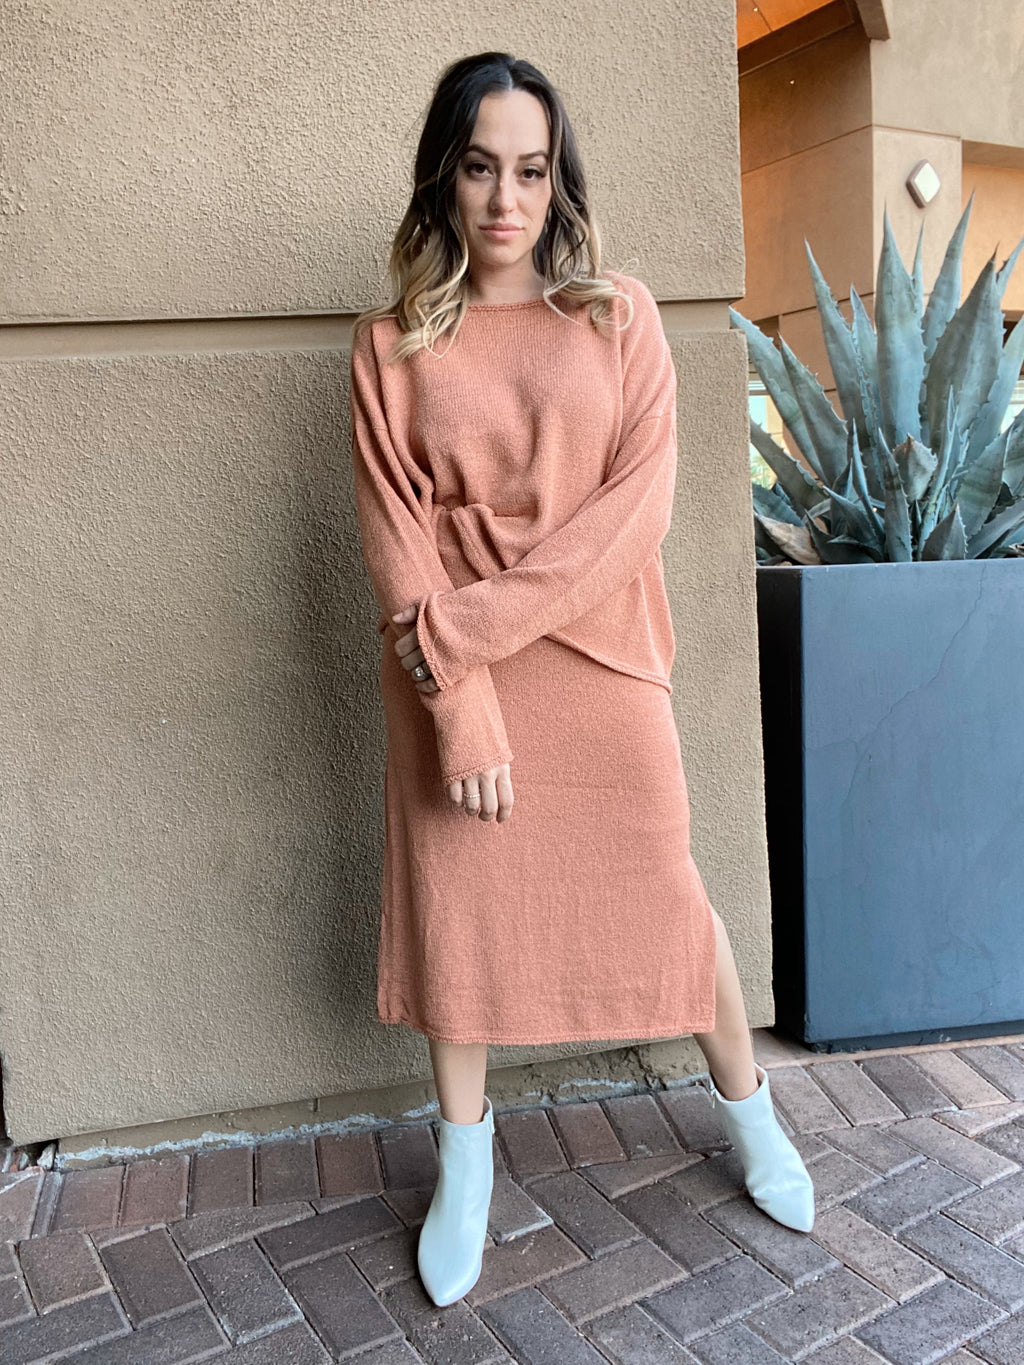 Pumpkin Spice Knit Sweater Skirt